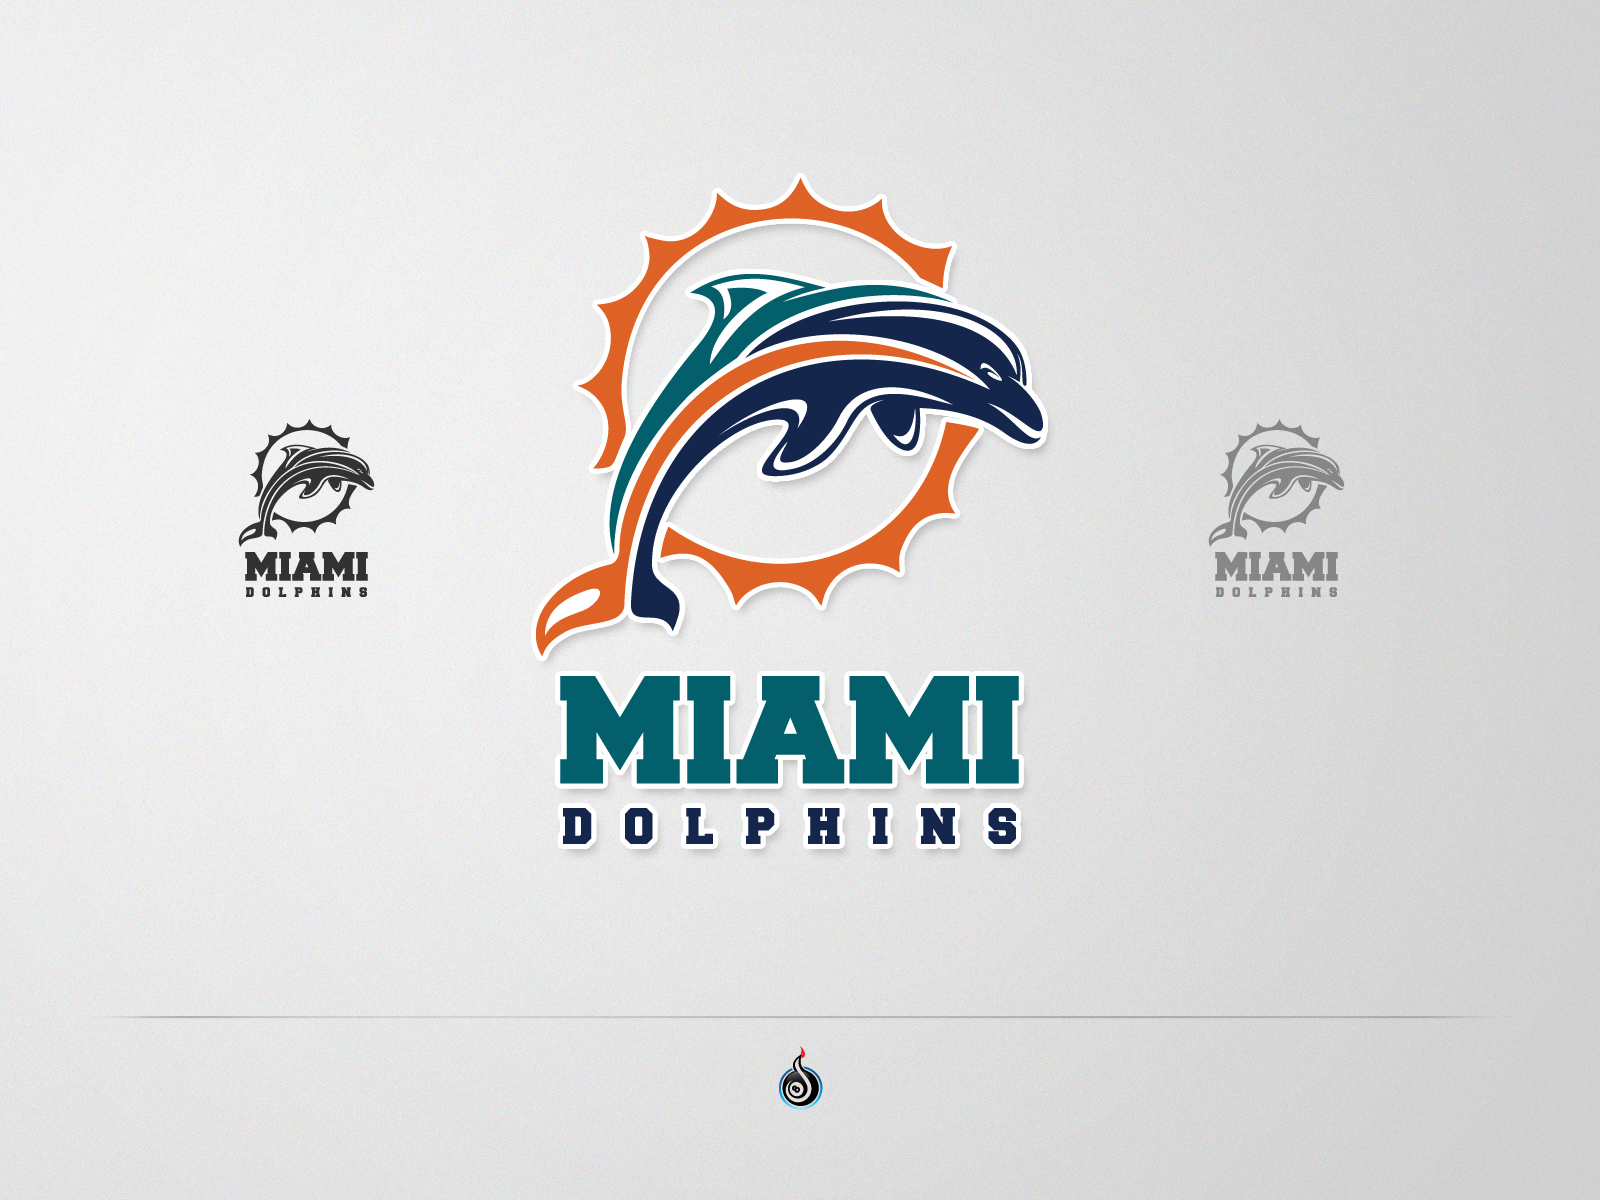 Miami Dolphins Iphone 5 Wallpapers The Wallpaper 1600x1200